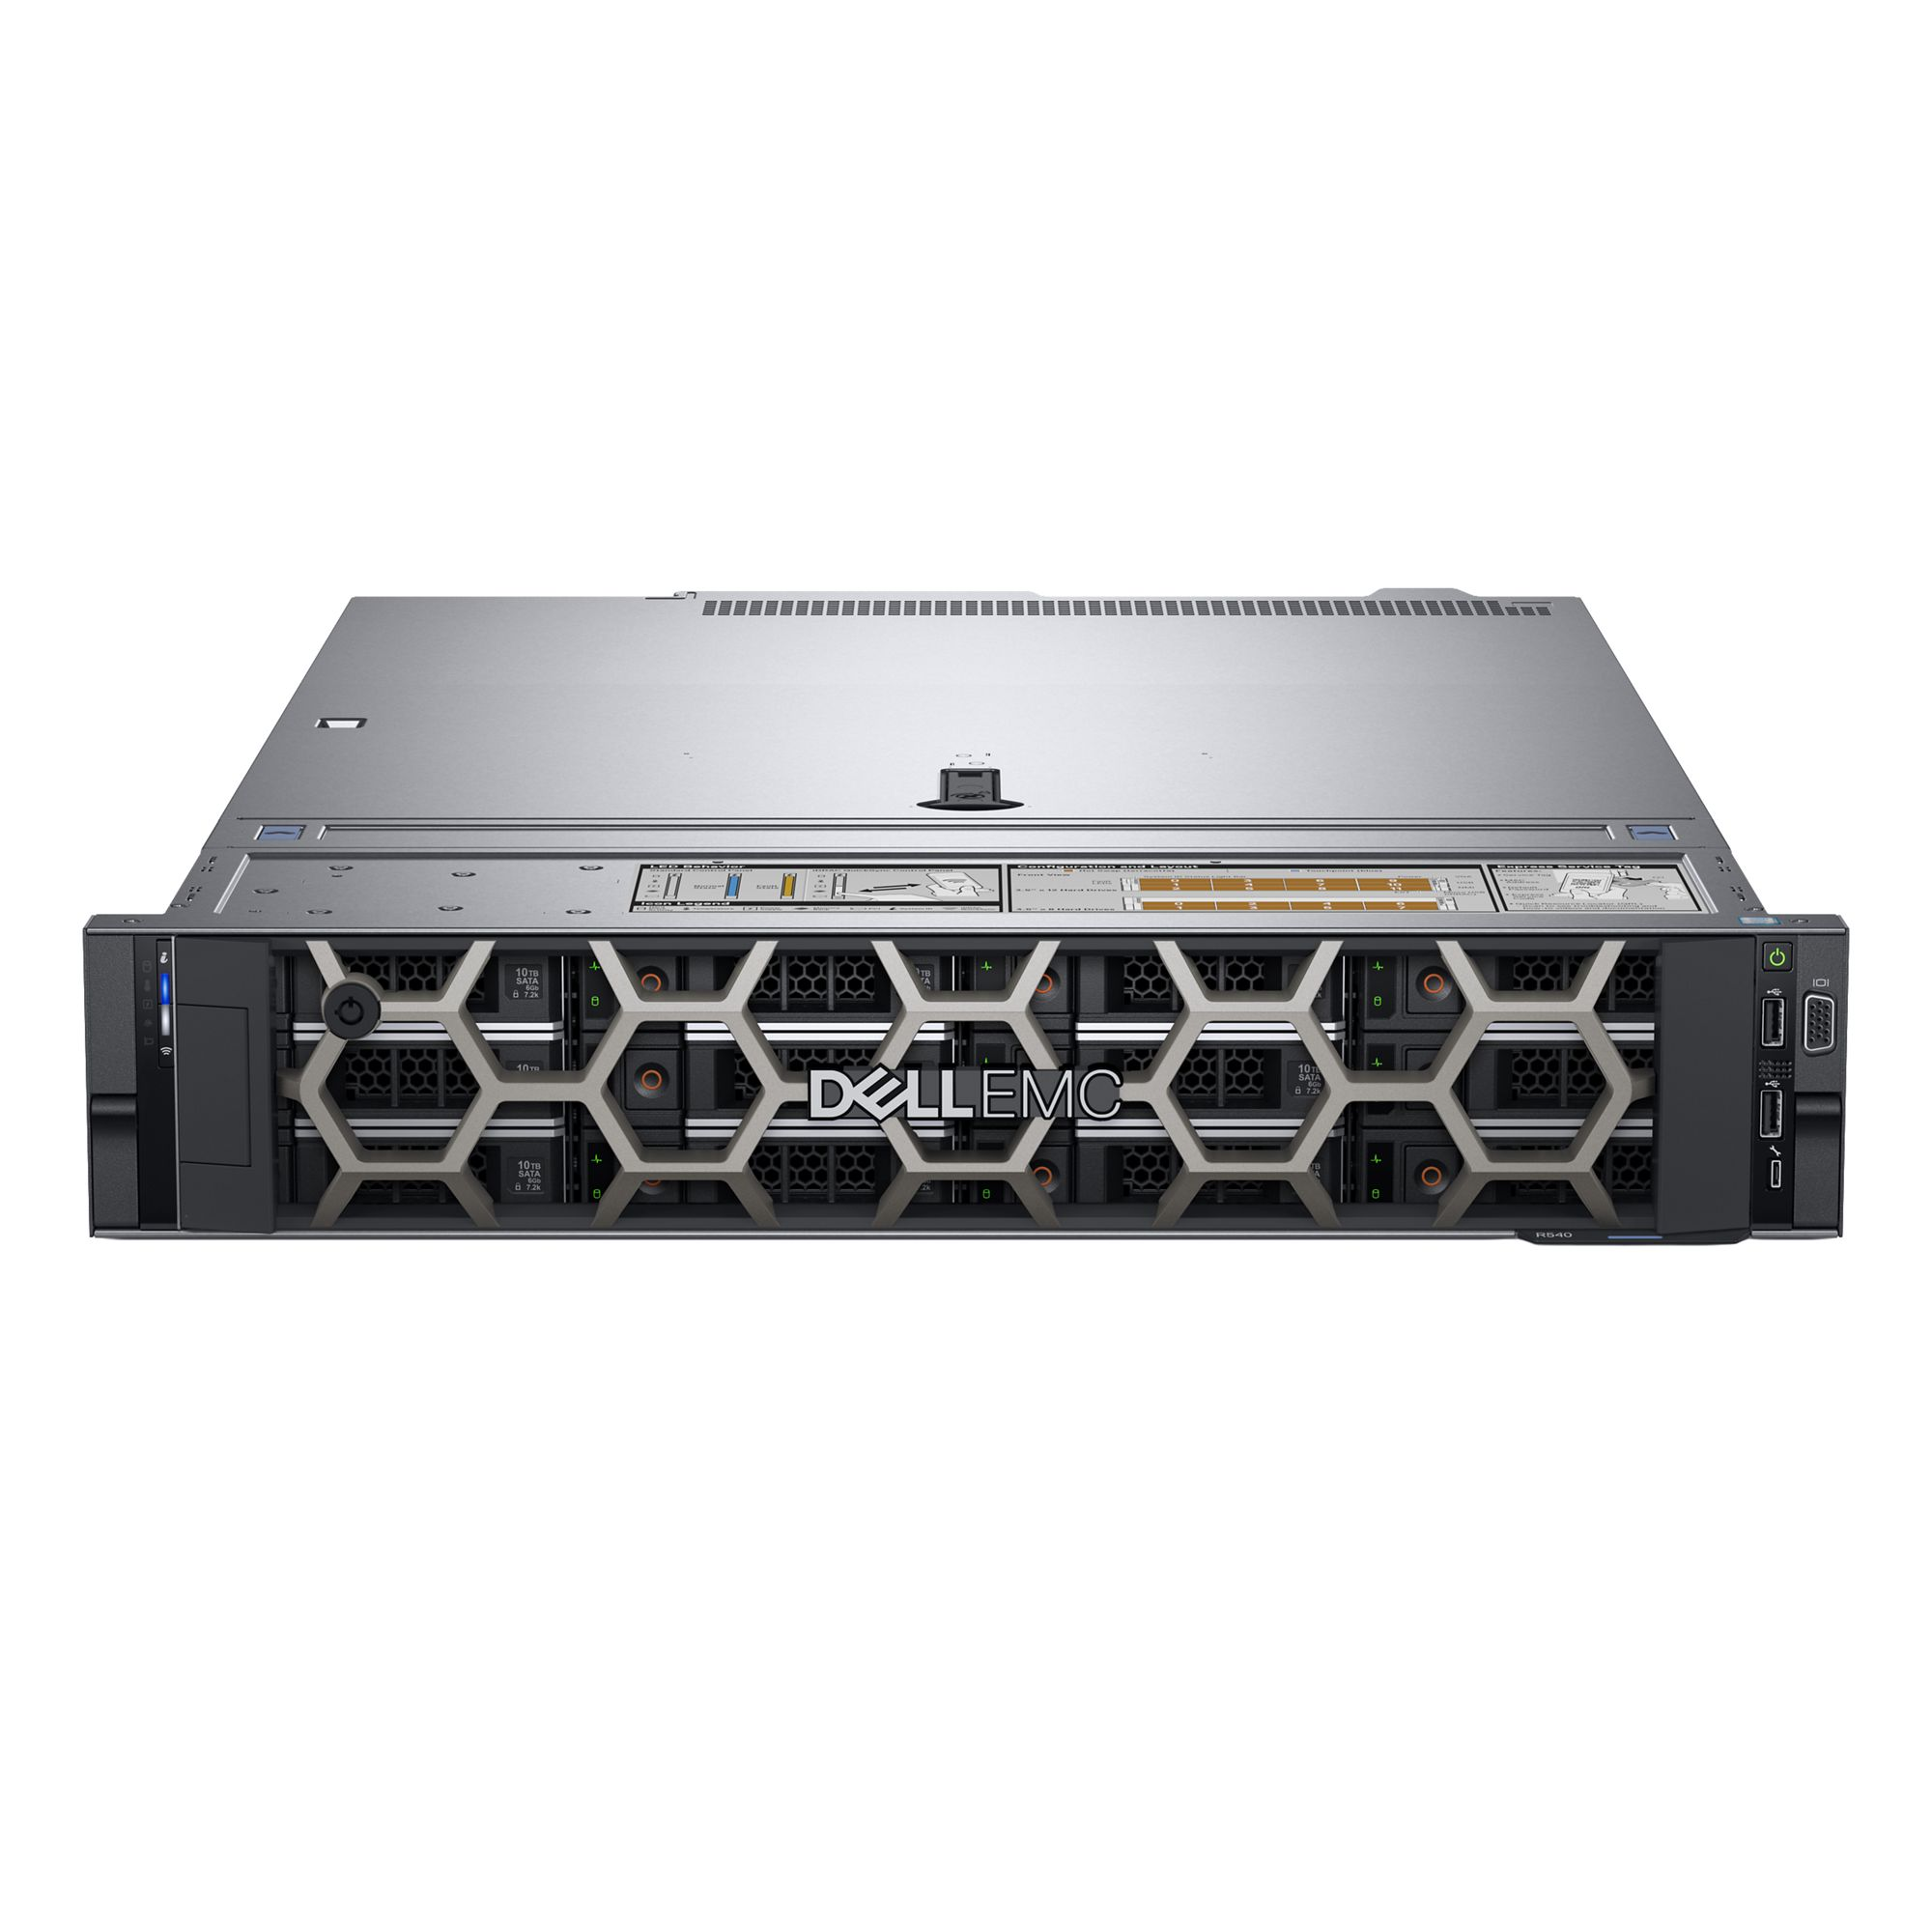 Serwer DELL PowerEdge R540 XS 4208 16GB 240GB SSD H730P iDRAC Bas. single 450W 3yNBD